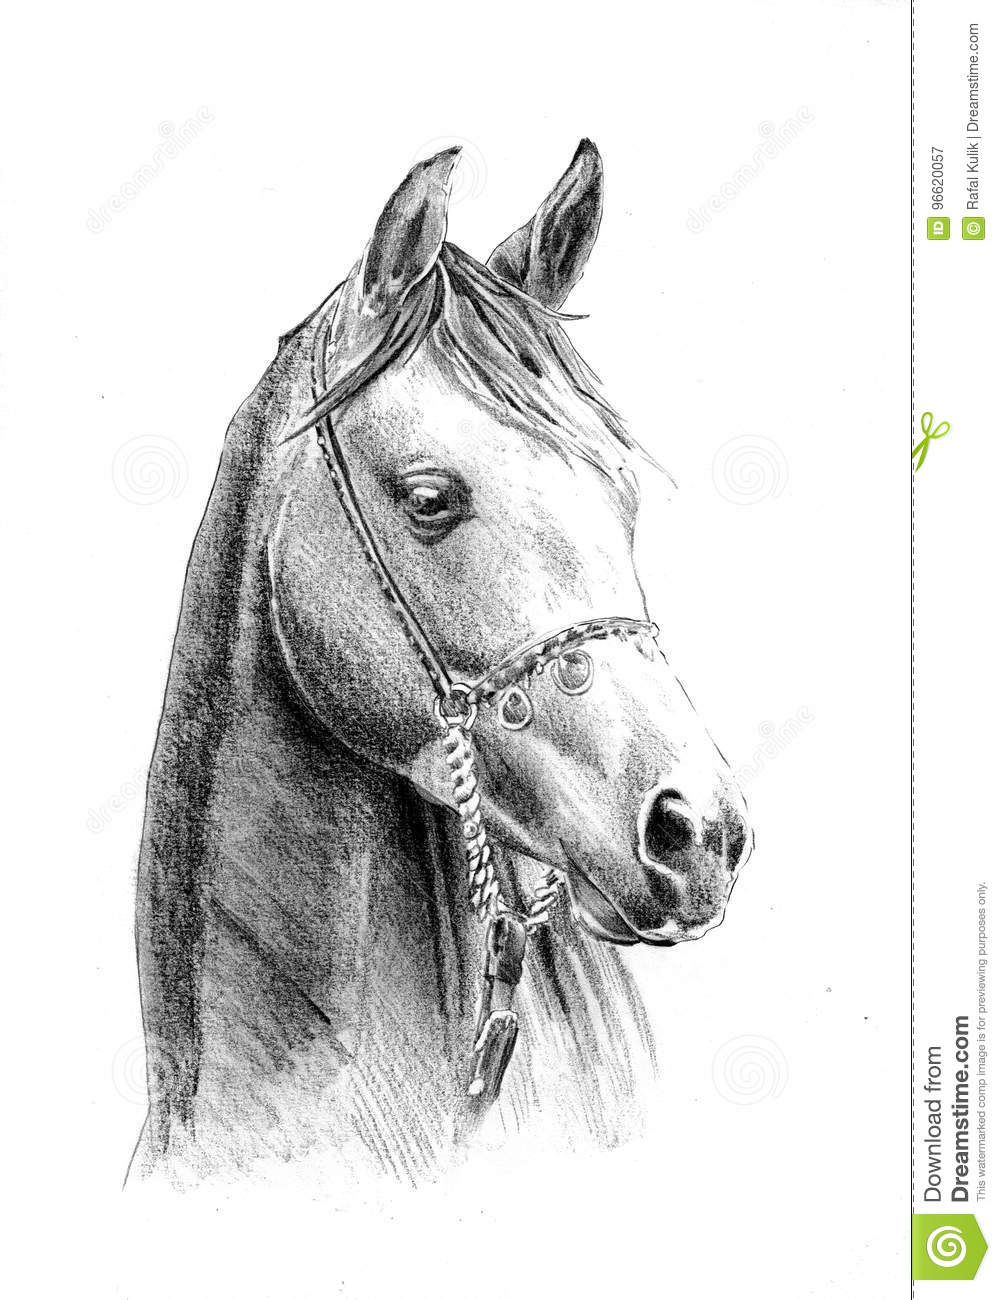 A very good freehand horse head pencil drawing